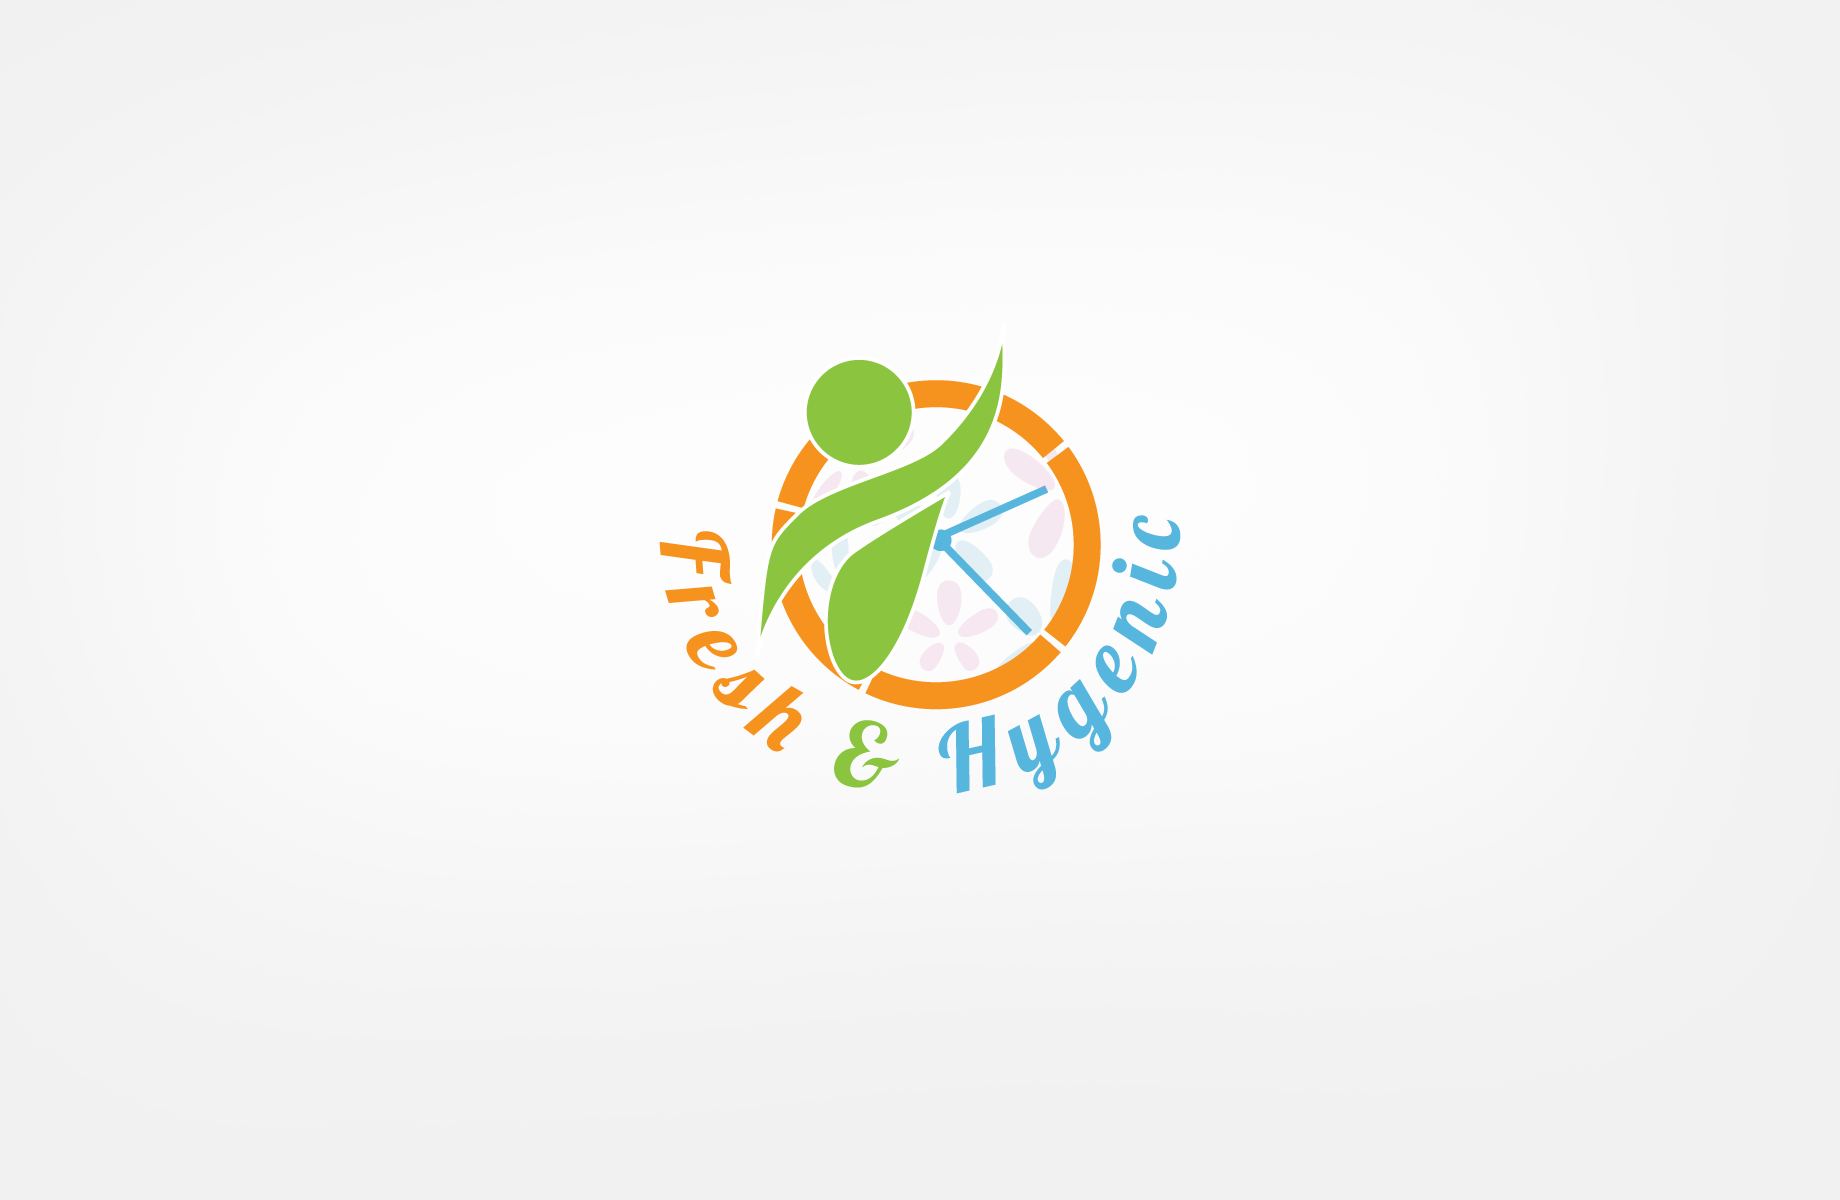 Logo Design by Jan Chua - Entry No. 68 in the Logo Design Contest Fun Logo Design for Fresh & Hygenic.